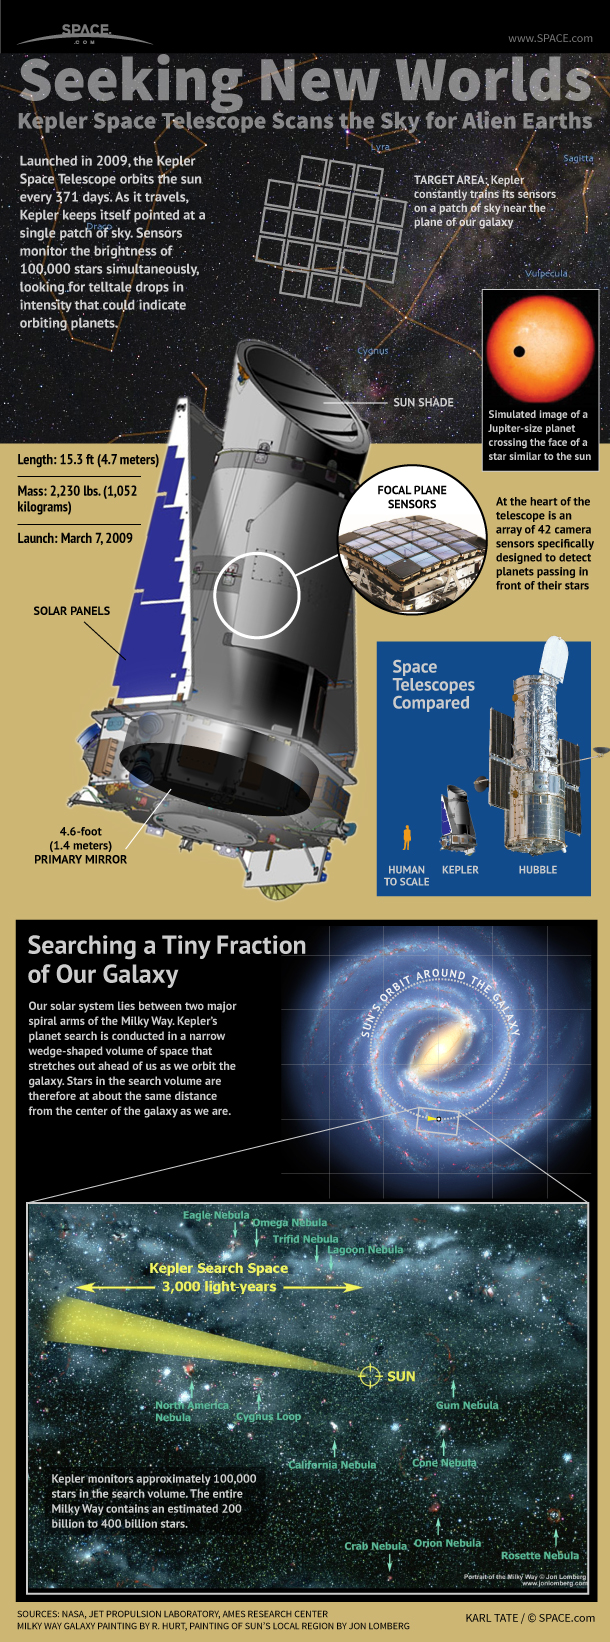 The mission of the Kepler Space Telescope is to identify and characterize Earth-size planets in the habitable zones of nearby stars.